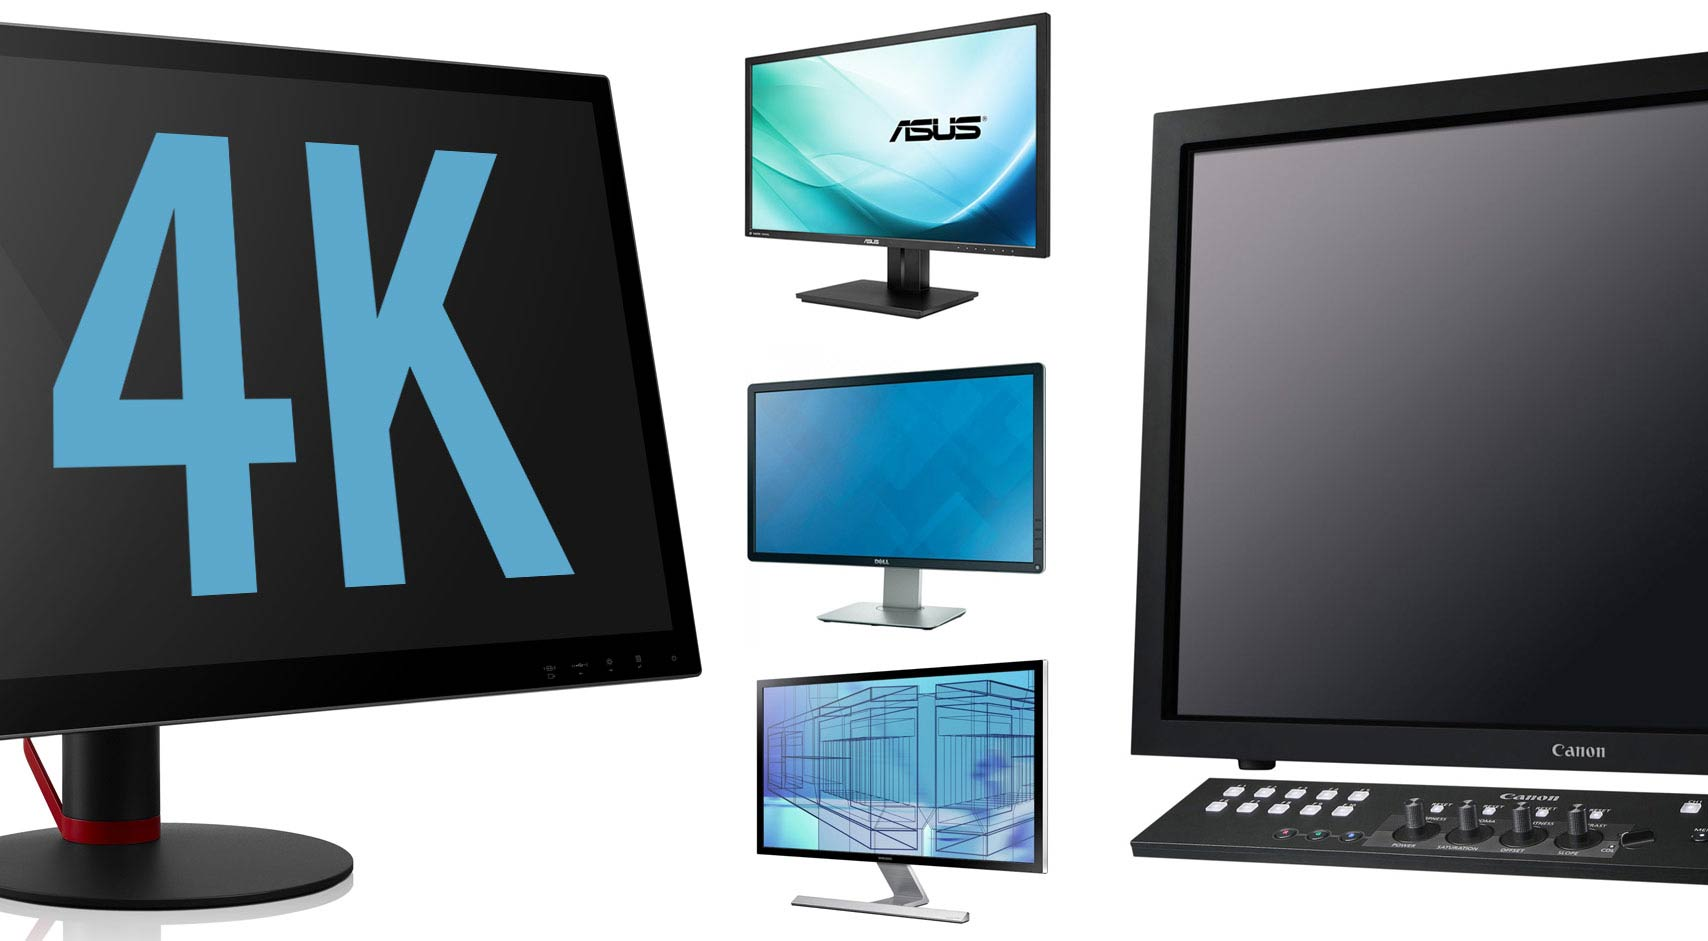 Best 4K Monitors for Photo Editing & Video: 2014 Roundup